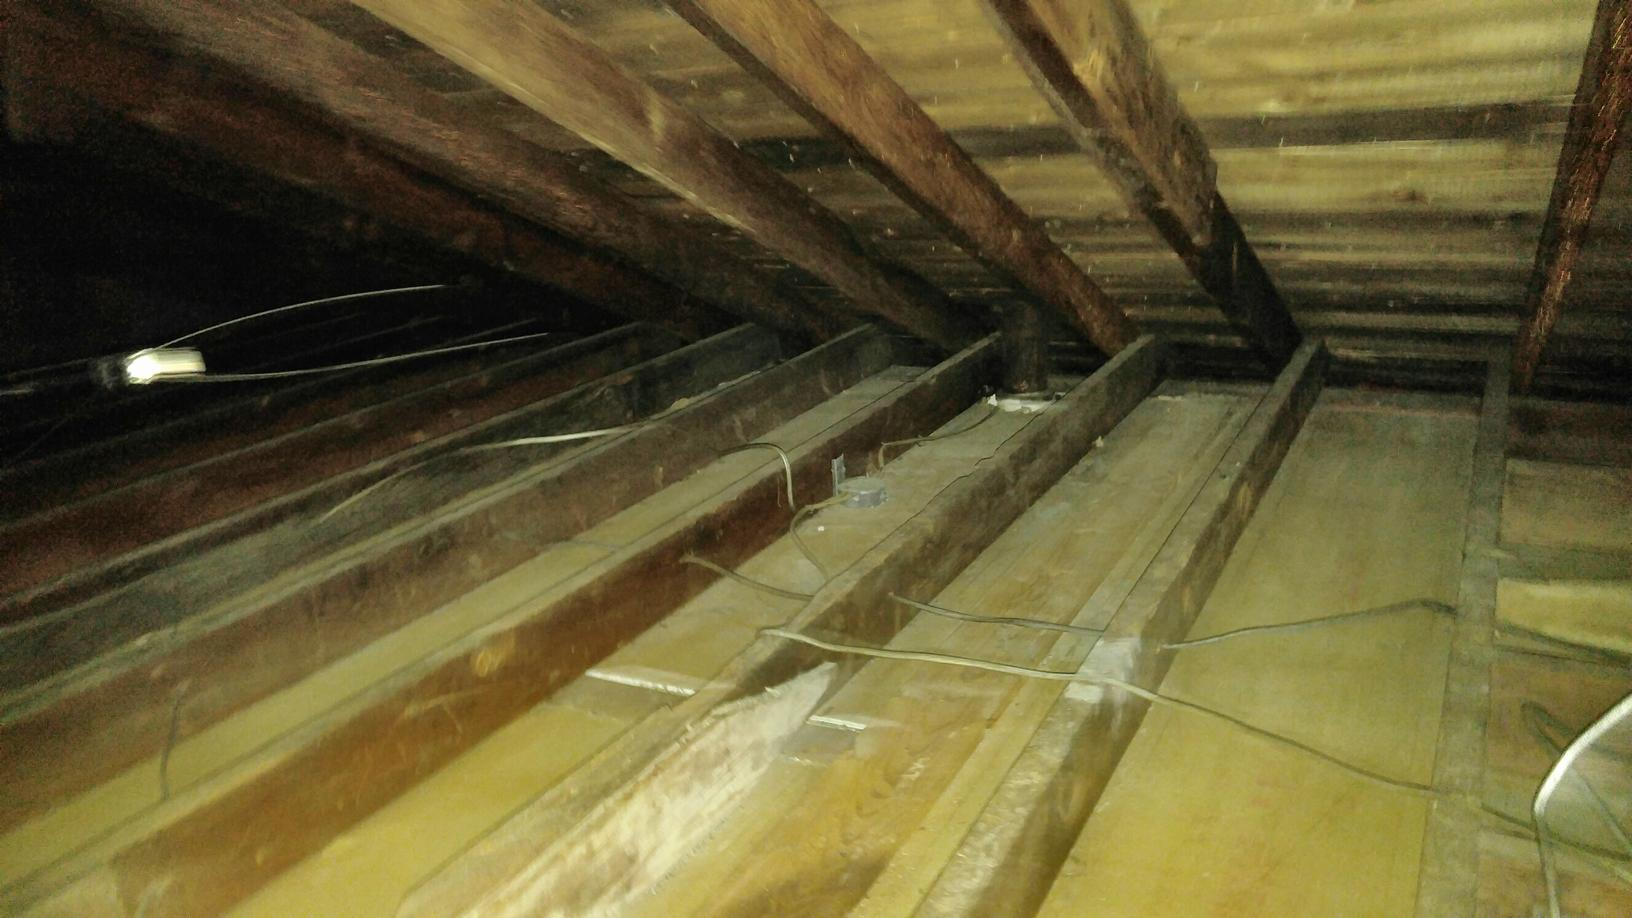 Raccoons wreak havoc in New Egypt attic - After Photo